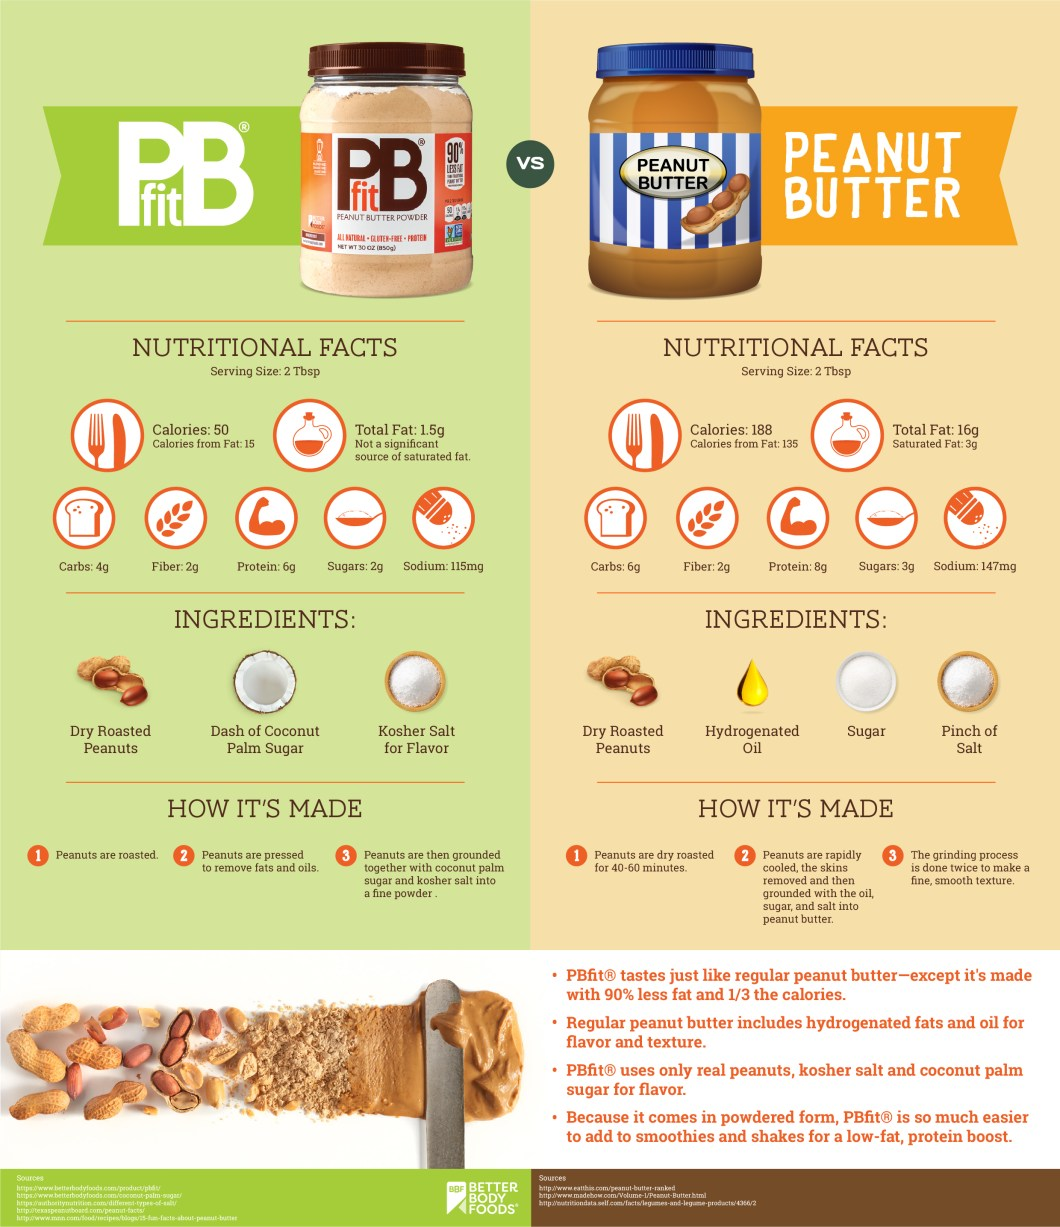 Powdered Peanut Butter or Peanut Butter? - Infographic